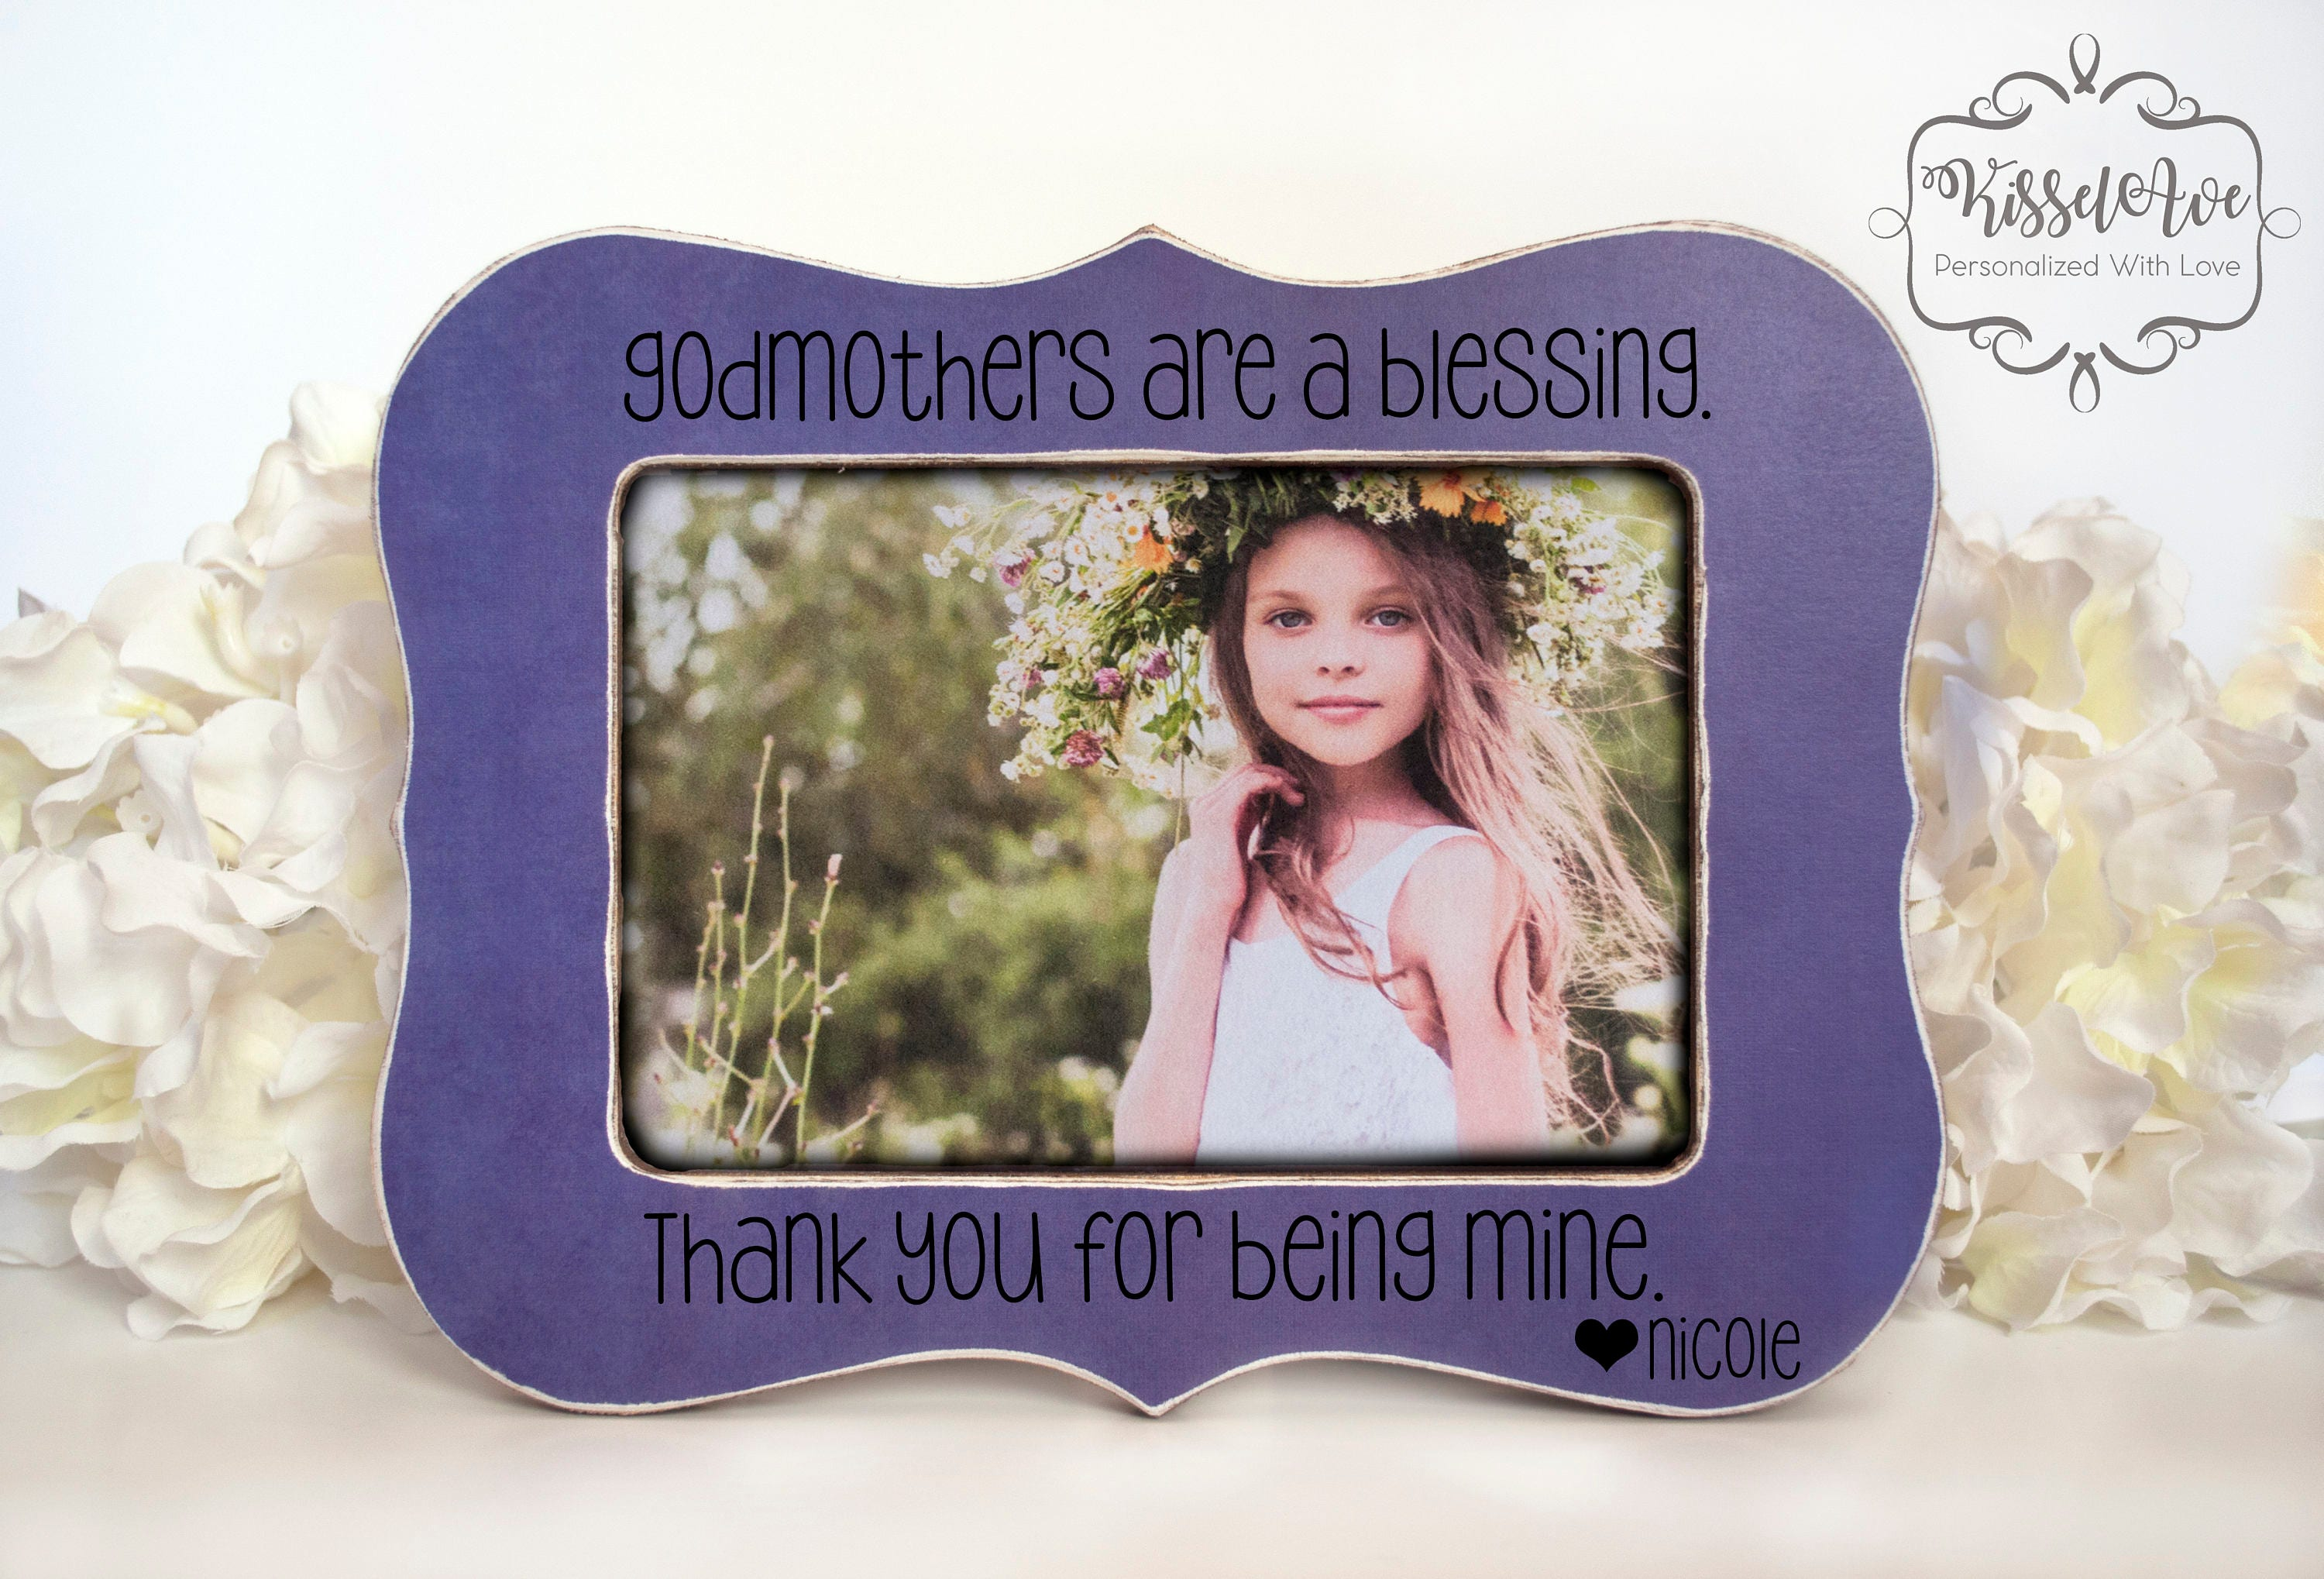 Gift For Godmother Godmother Gift Mothers Day Gift: Godmother Gift Mothers Day Gift Godmother Personalized Gift